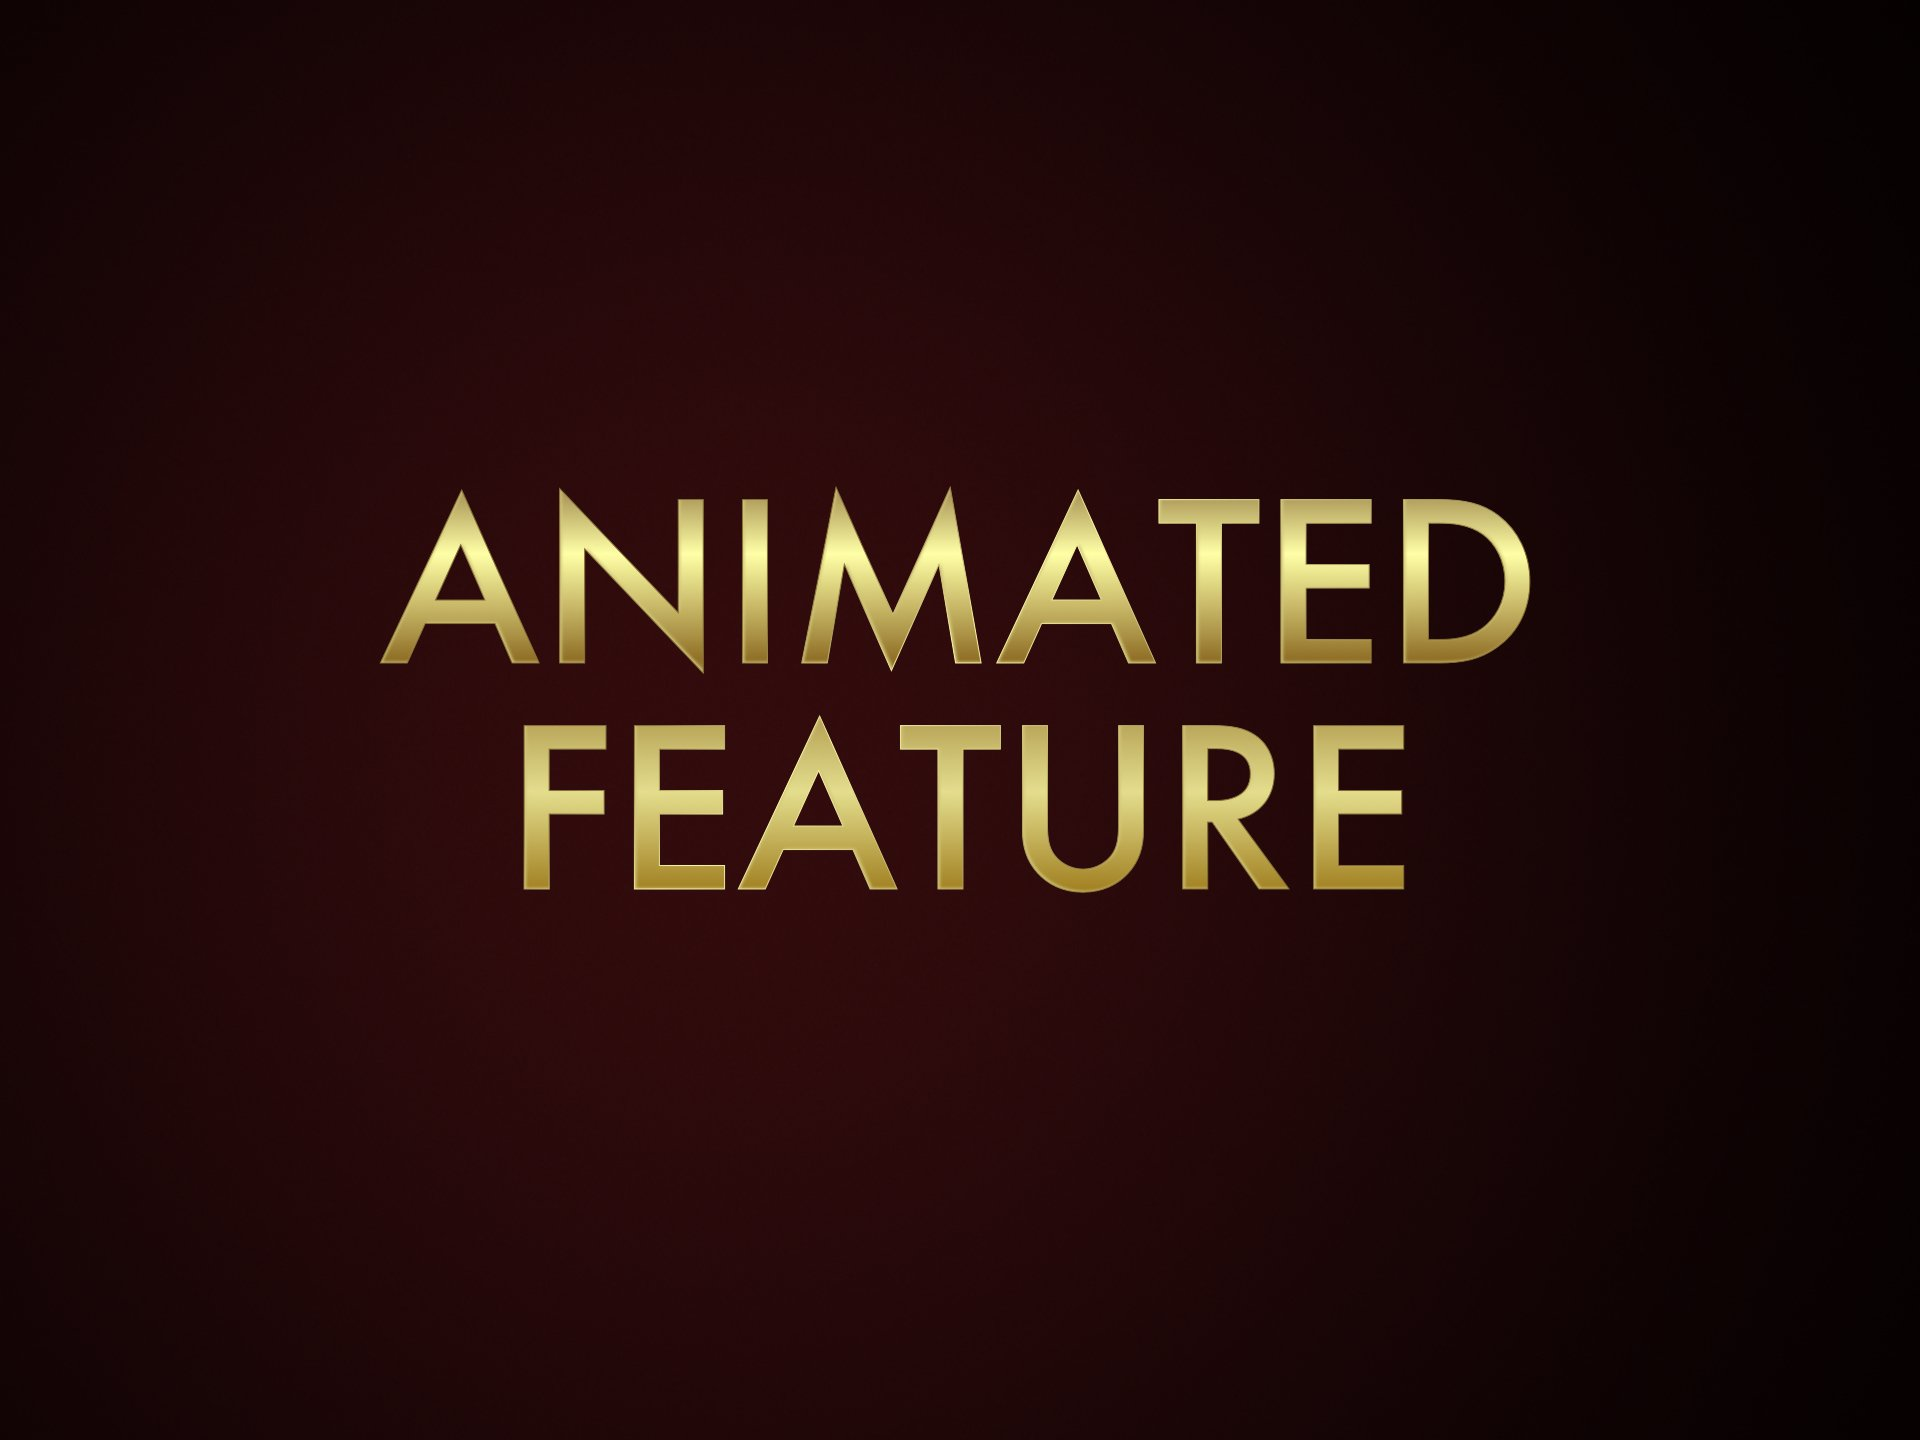 Animated Feature Film Oscar Nominations 2020